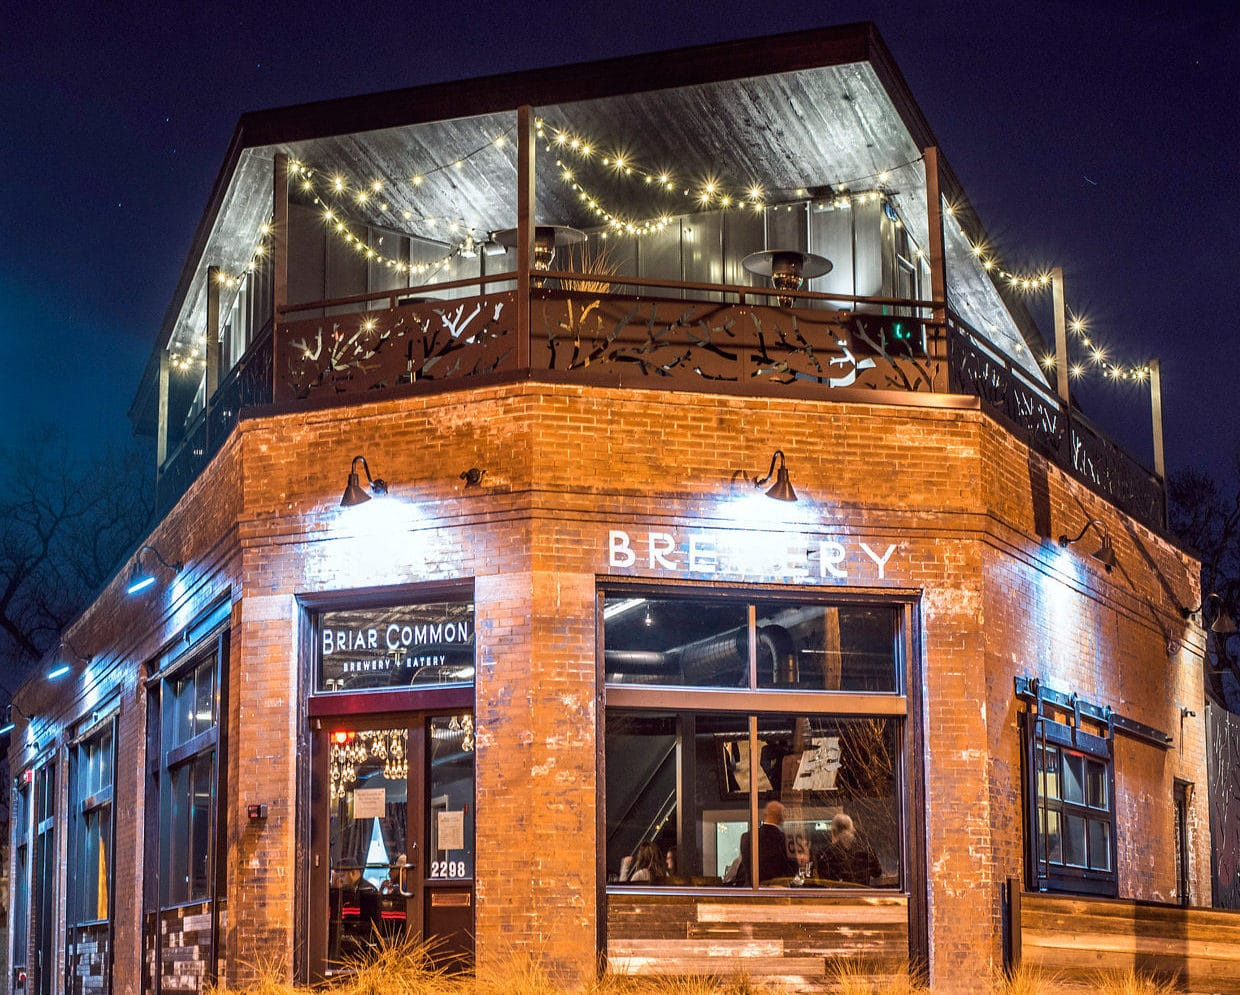 Briar Common - one of many breweries in Denver with food